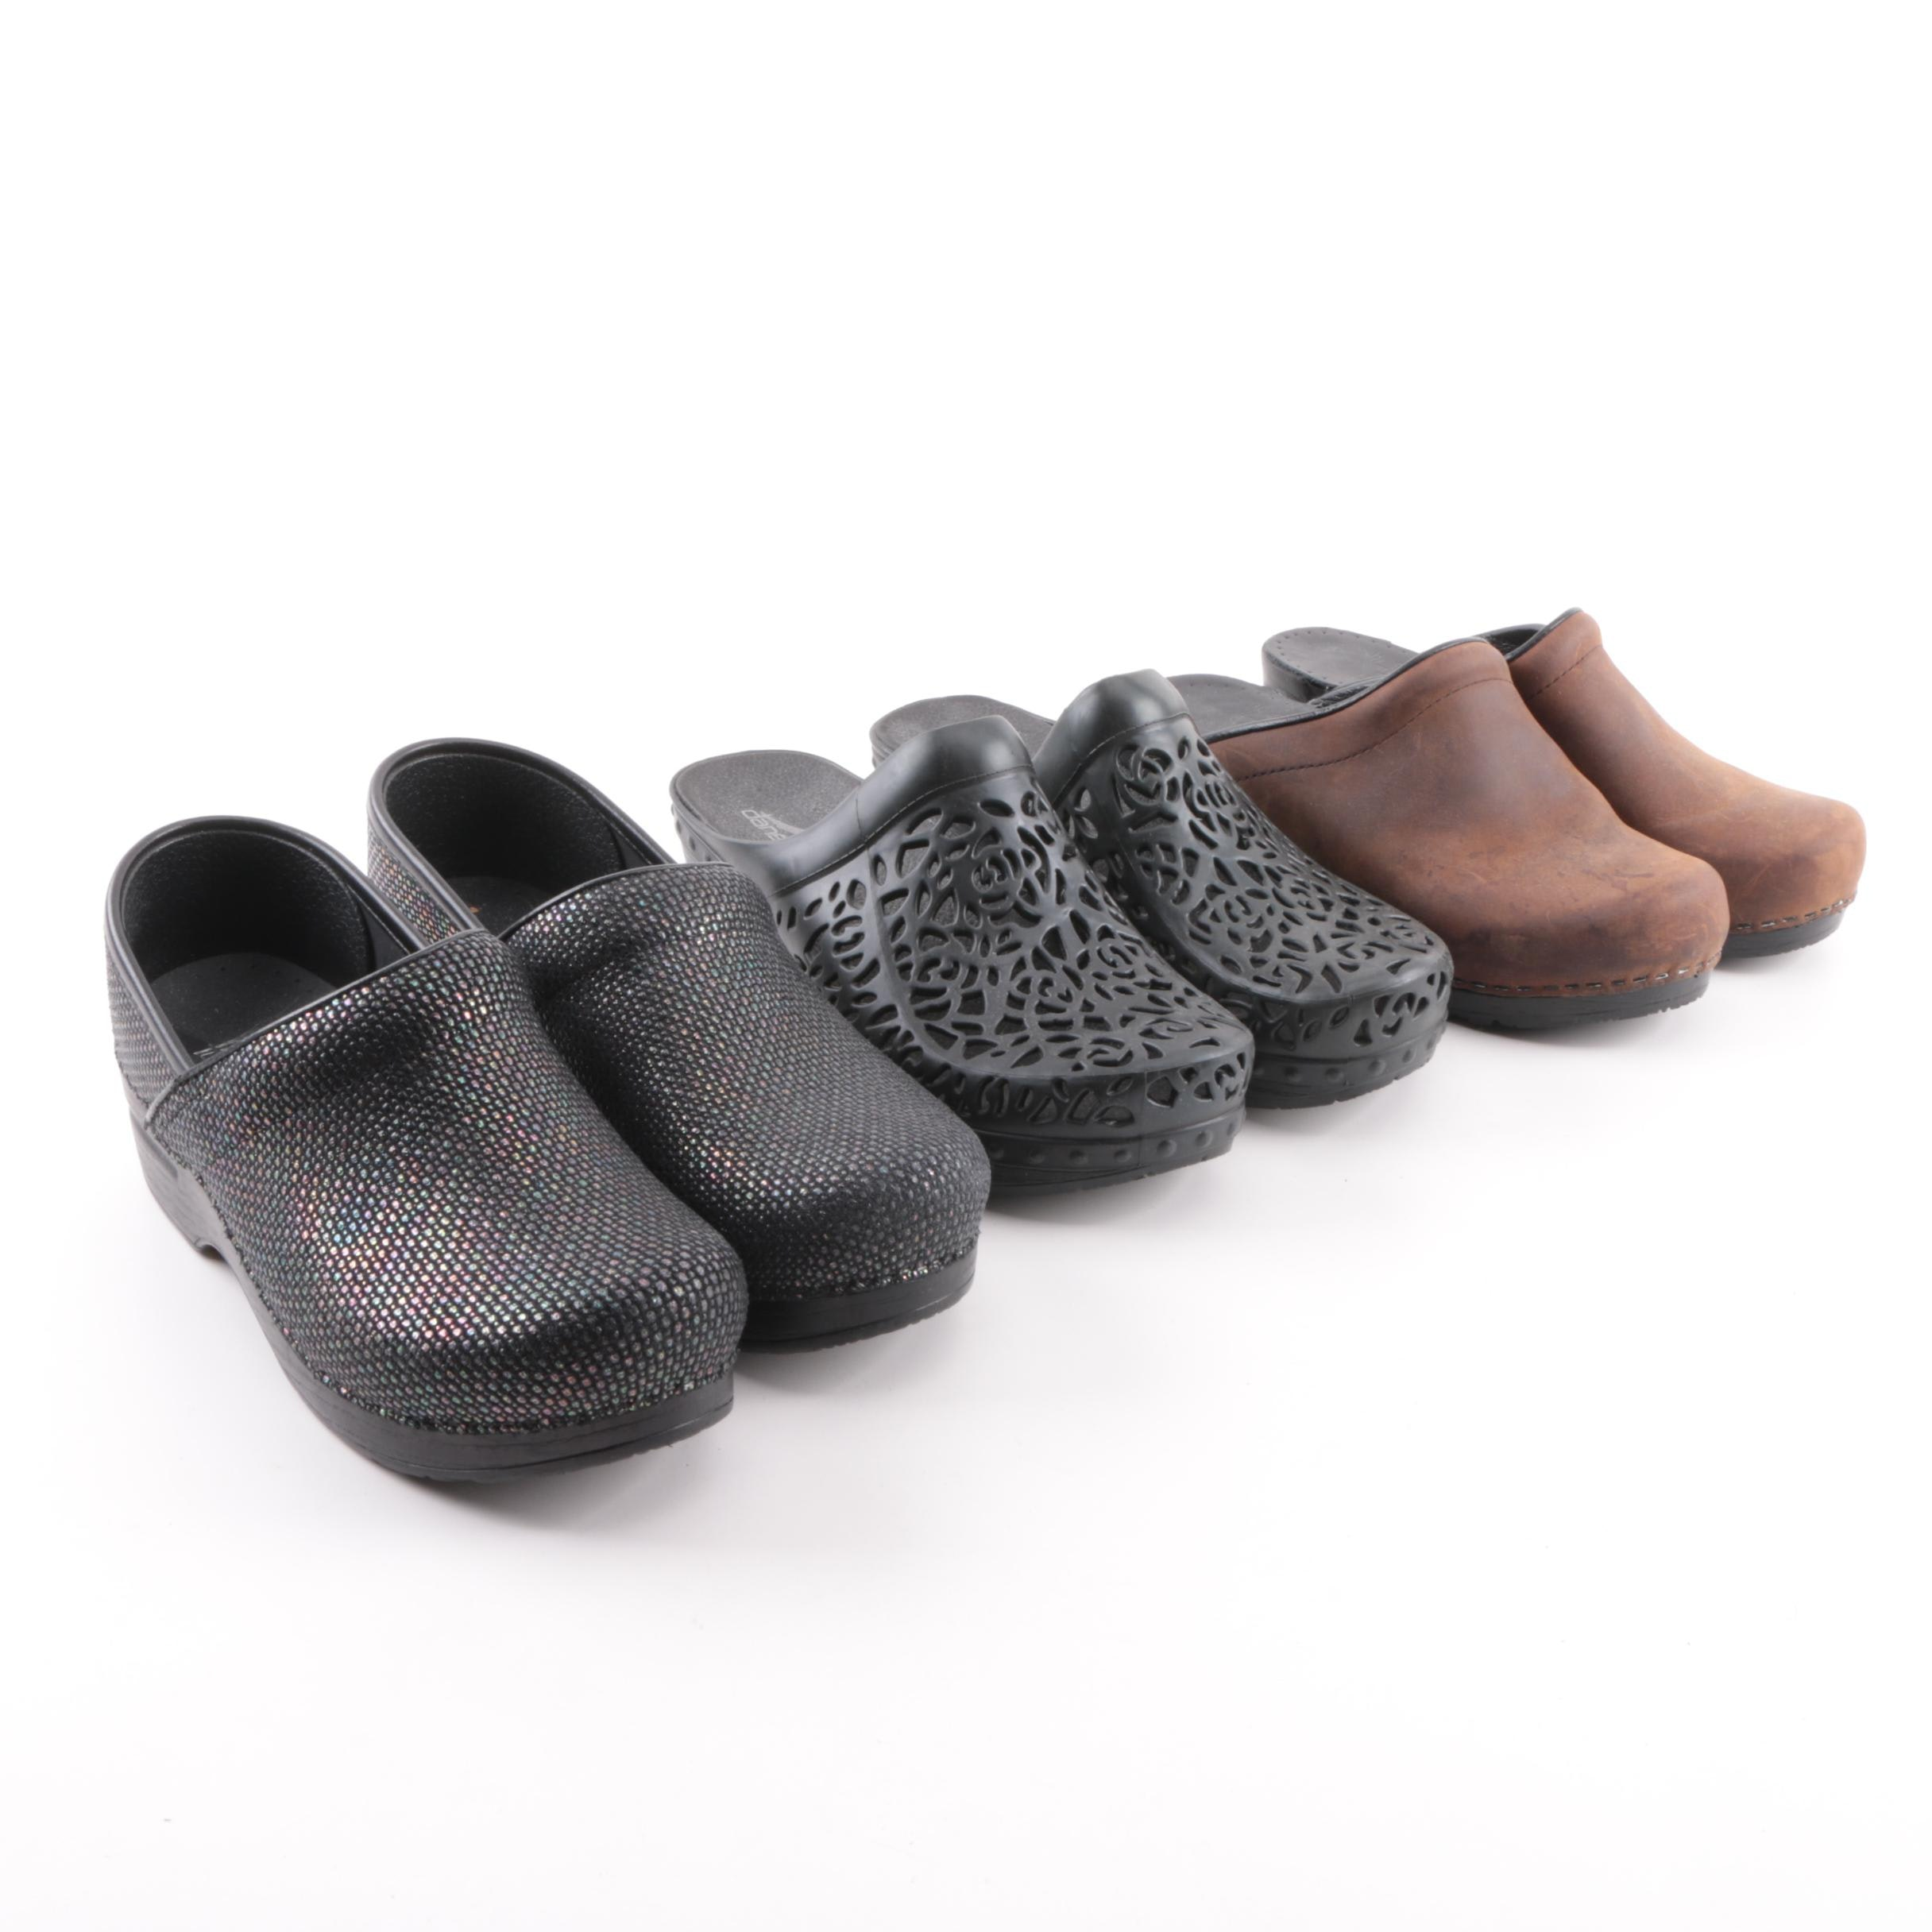 Women's Dansko Clogs